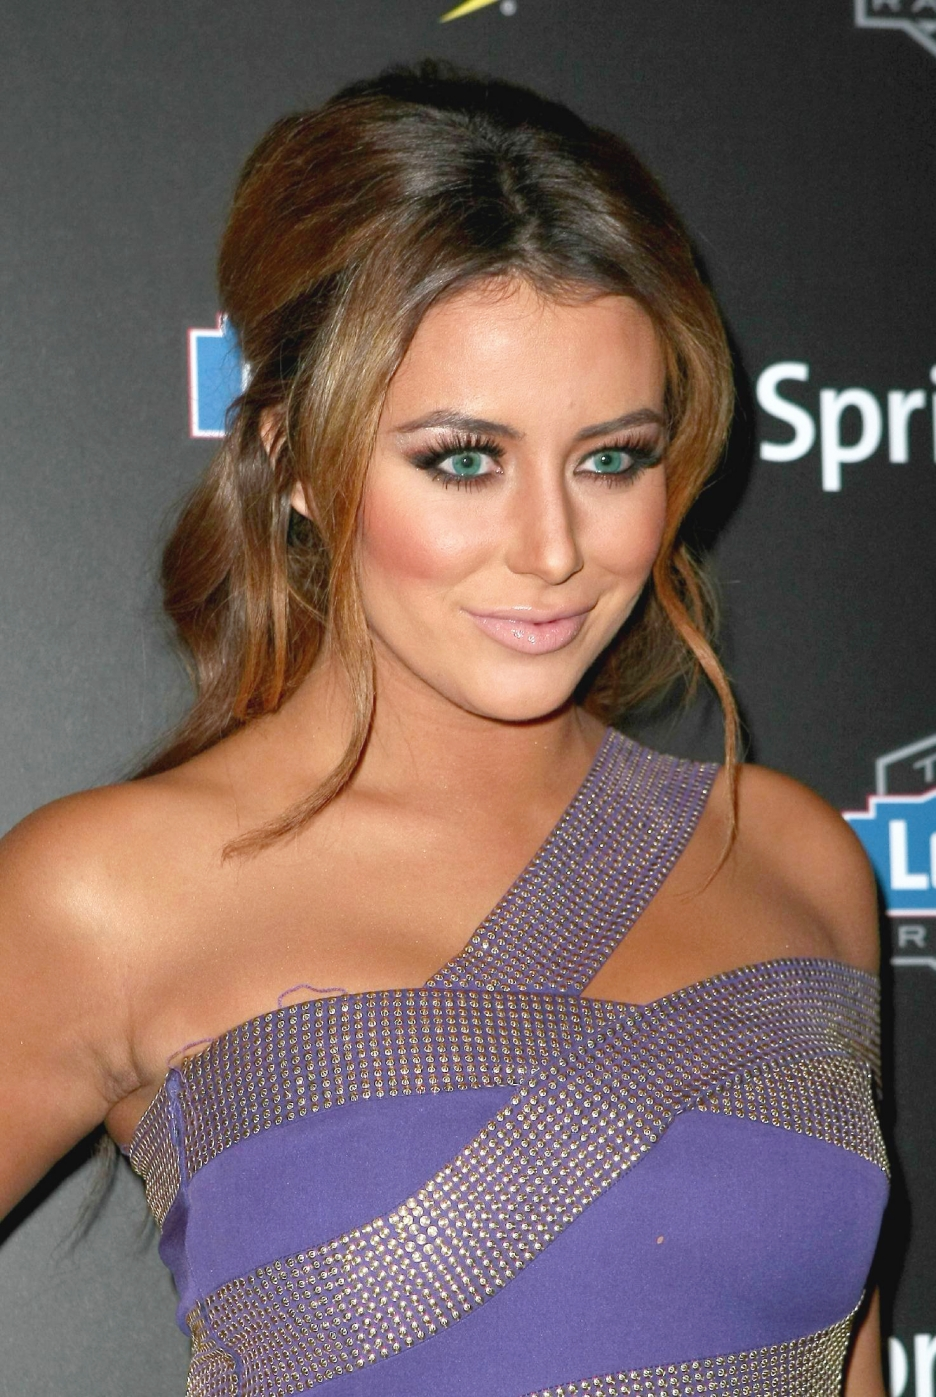 Aubrey o'day dating 2013